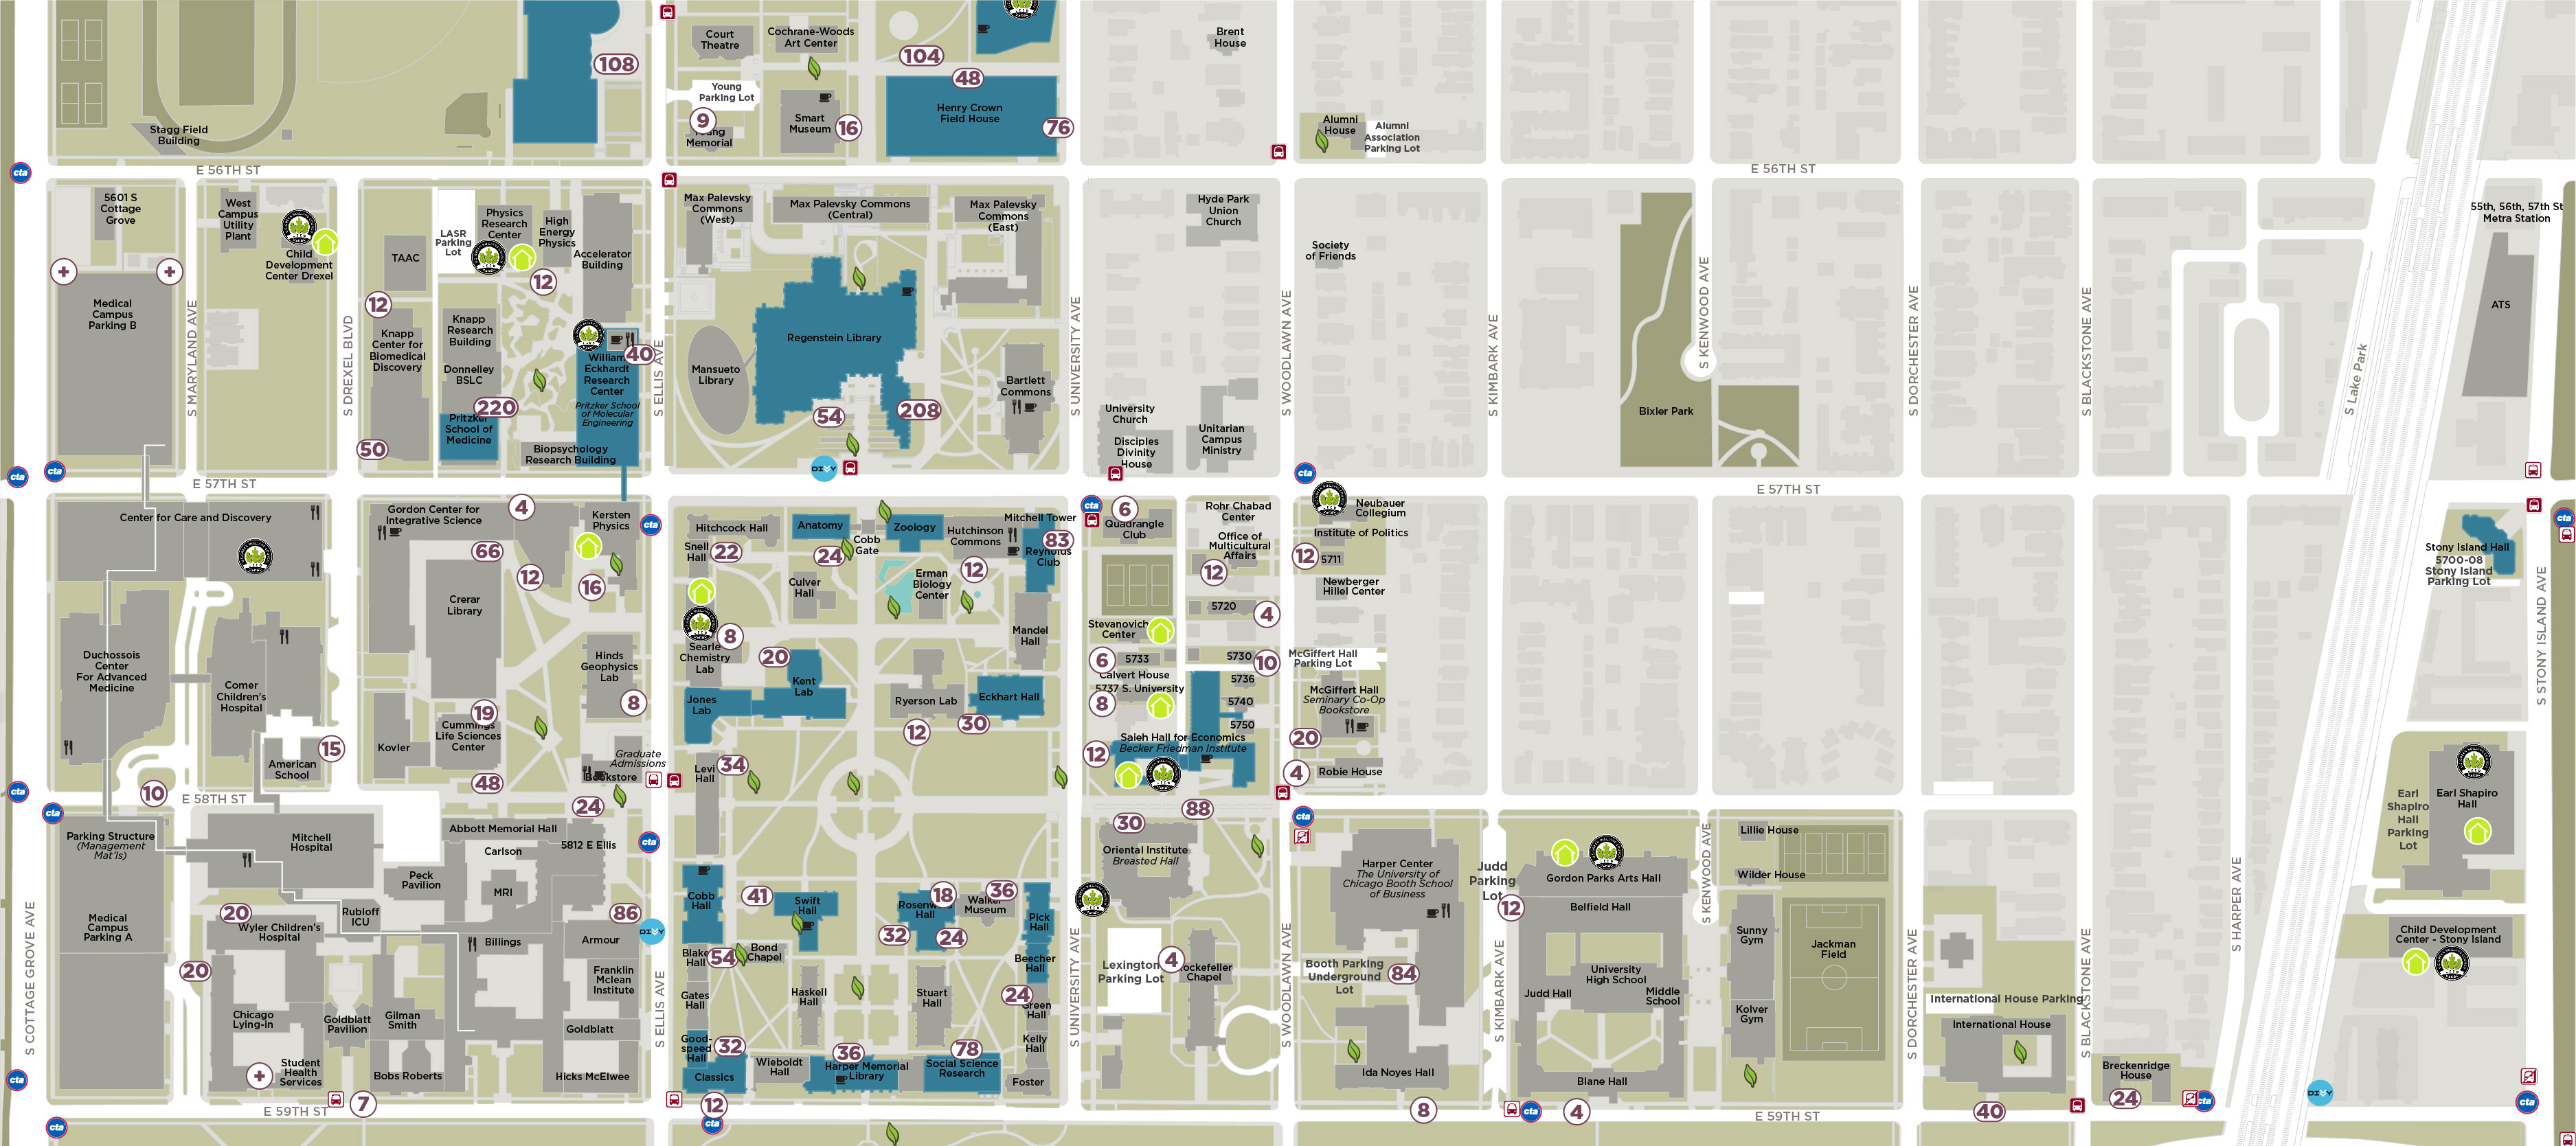 map of u of c campus Uchicago Sustainability Map Sustainability At The University Of Chicago map of u of c campus